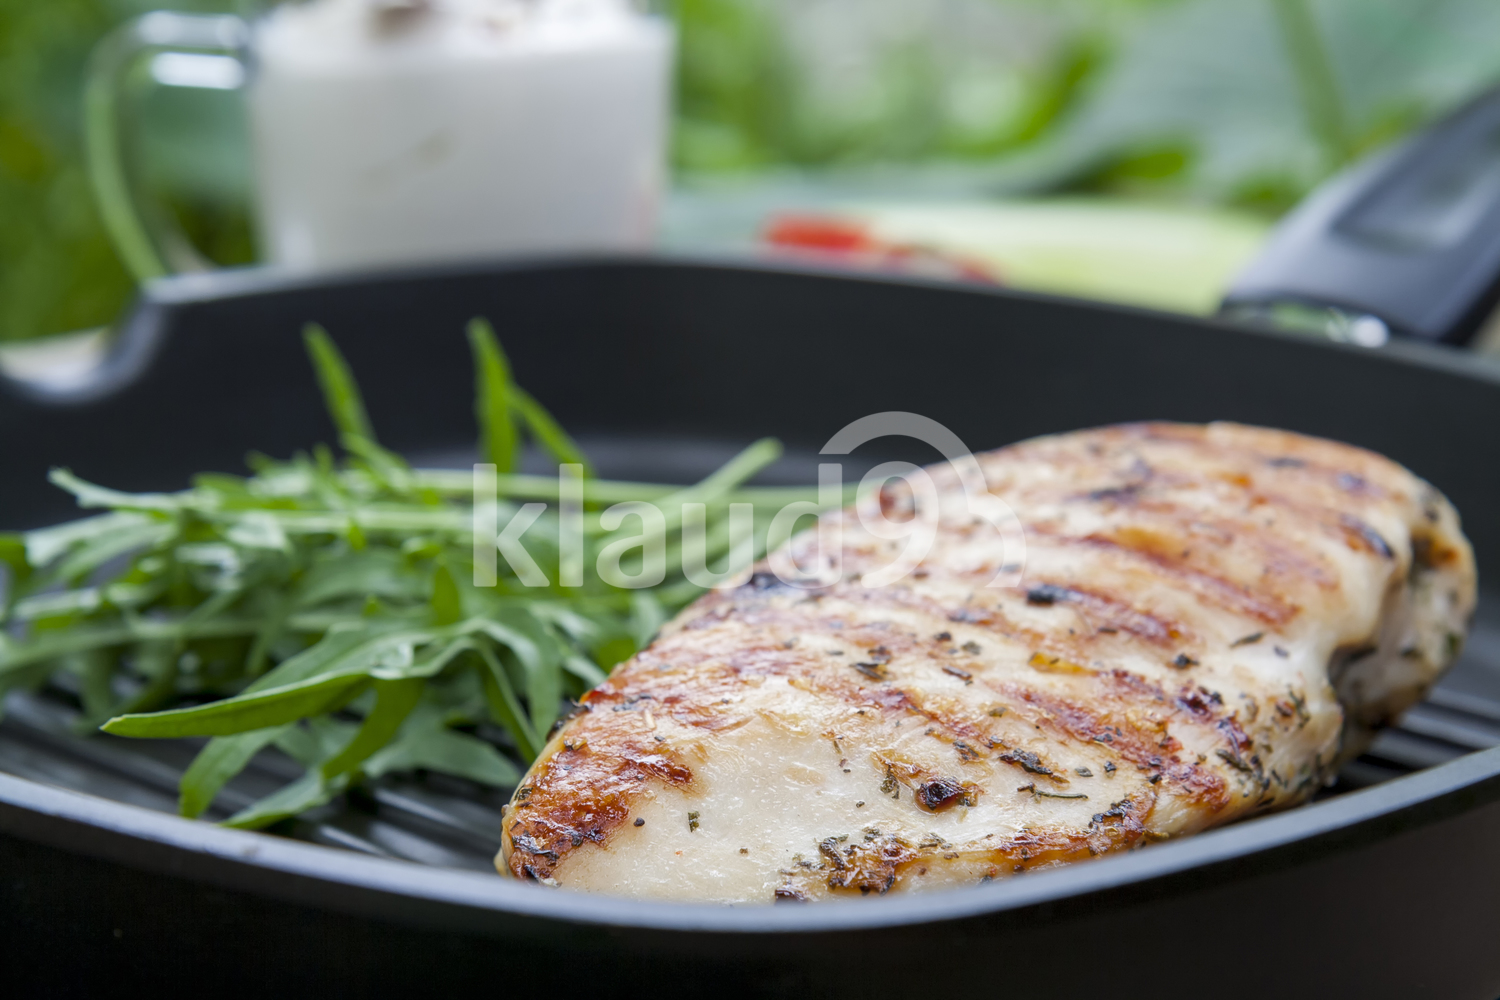 Grilled chicken breast steak with arugula on teflon pan grill